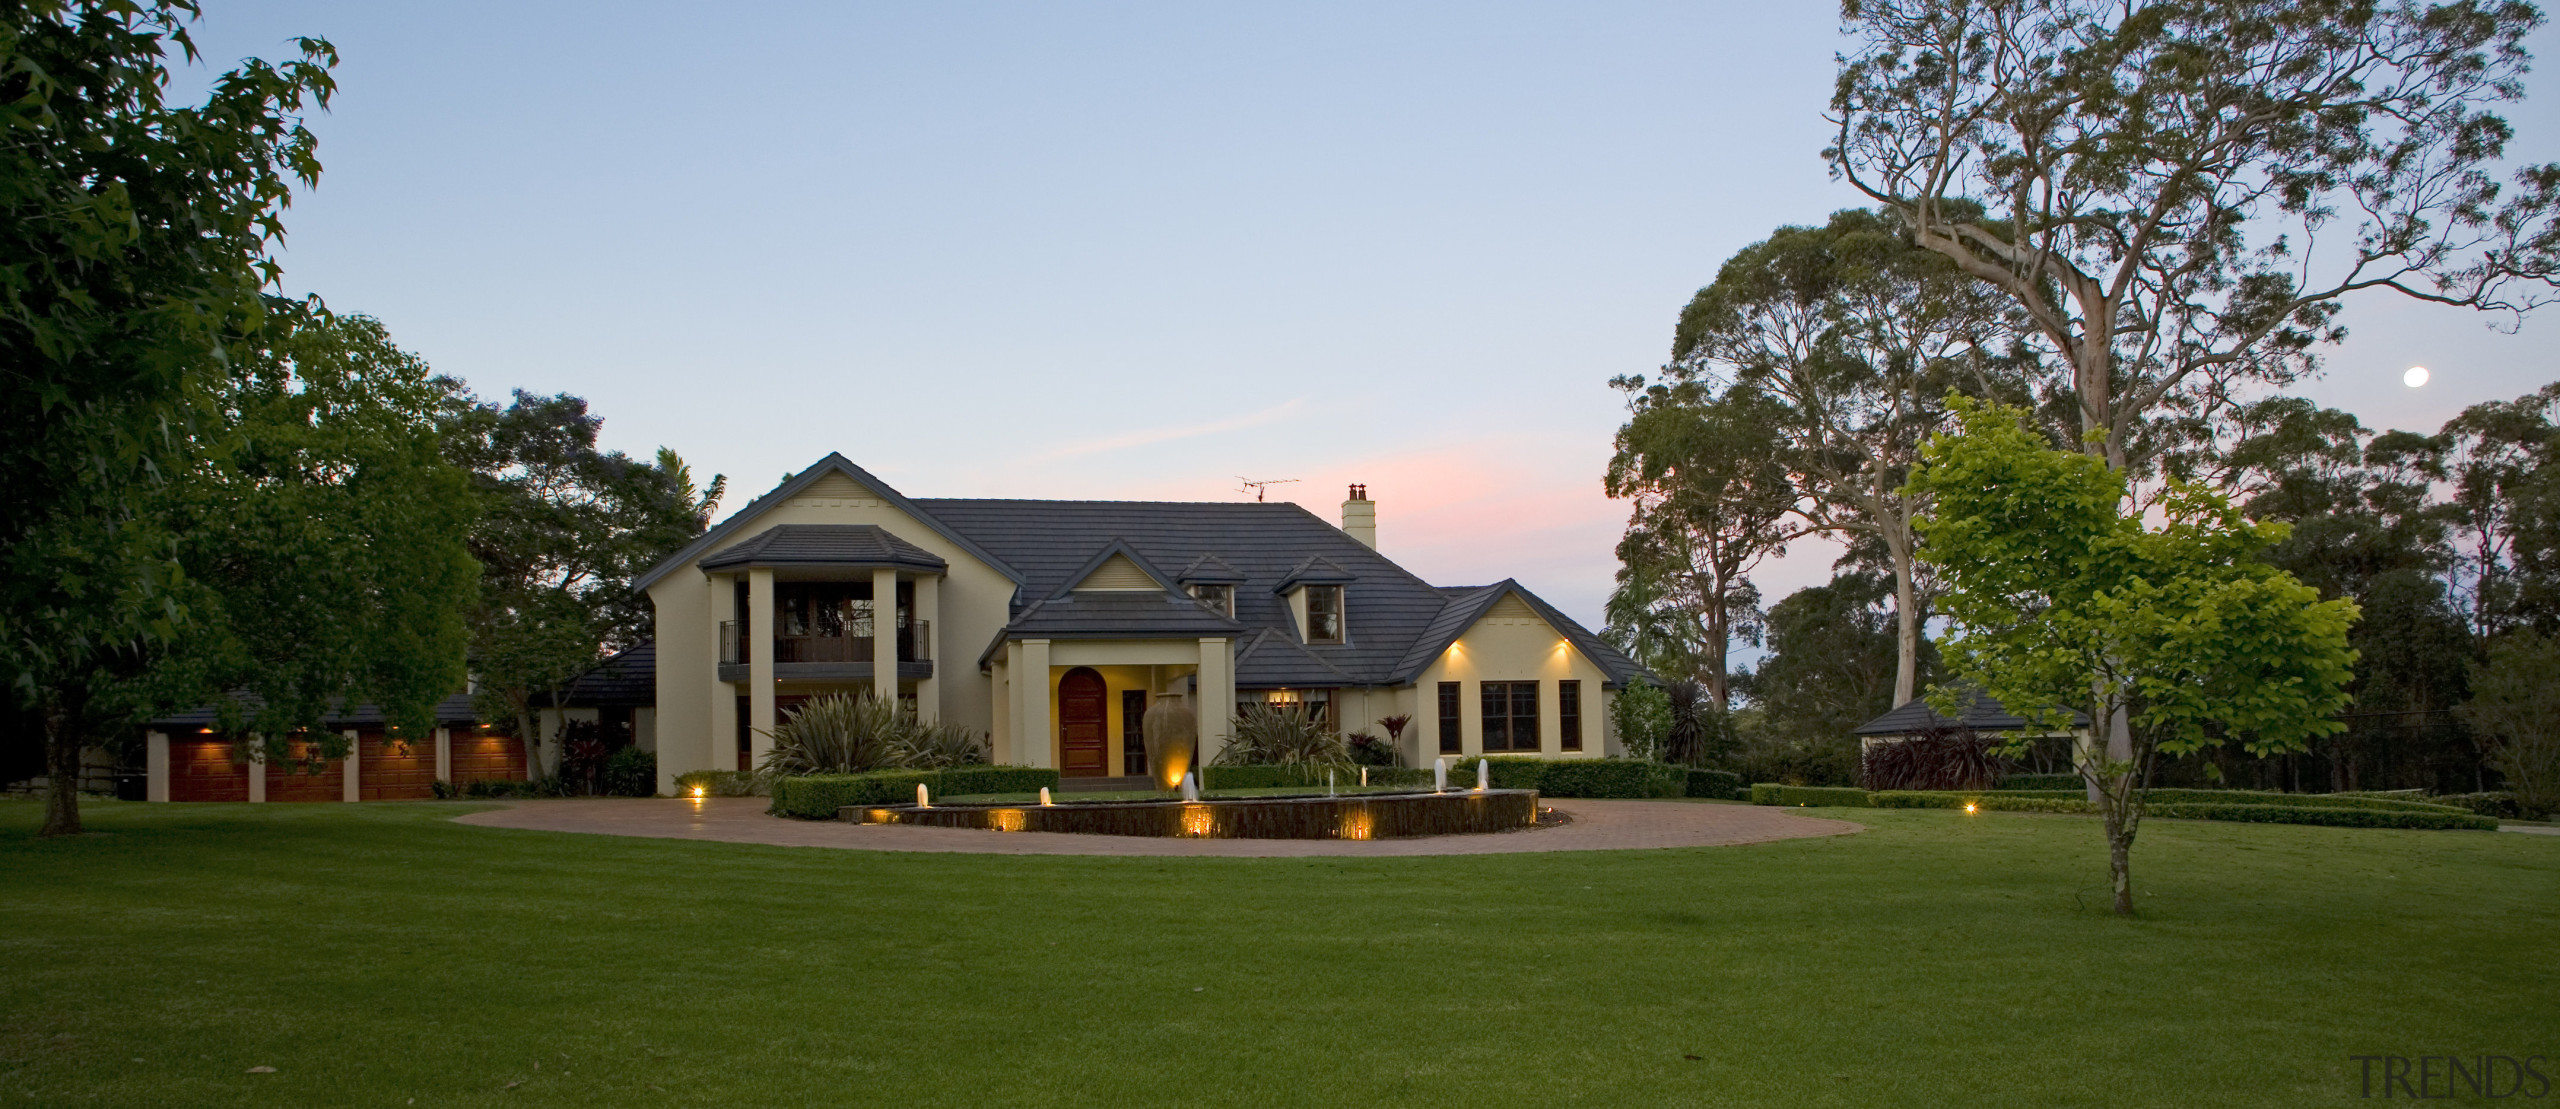 Exterior view of a home which was designed backyard, cottage, estate, farmhouse, grass, home, house, land lot, landscape, landscaping, lawn, mansion, plantation, property, real estate, residential area, suburb, tree, villa, yard, brown